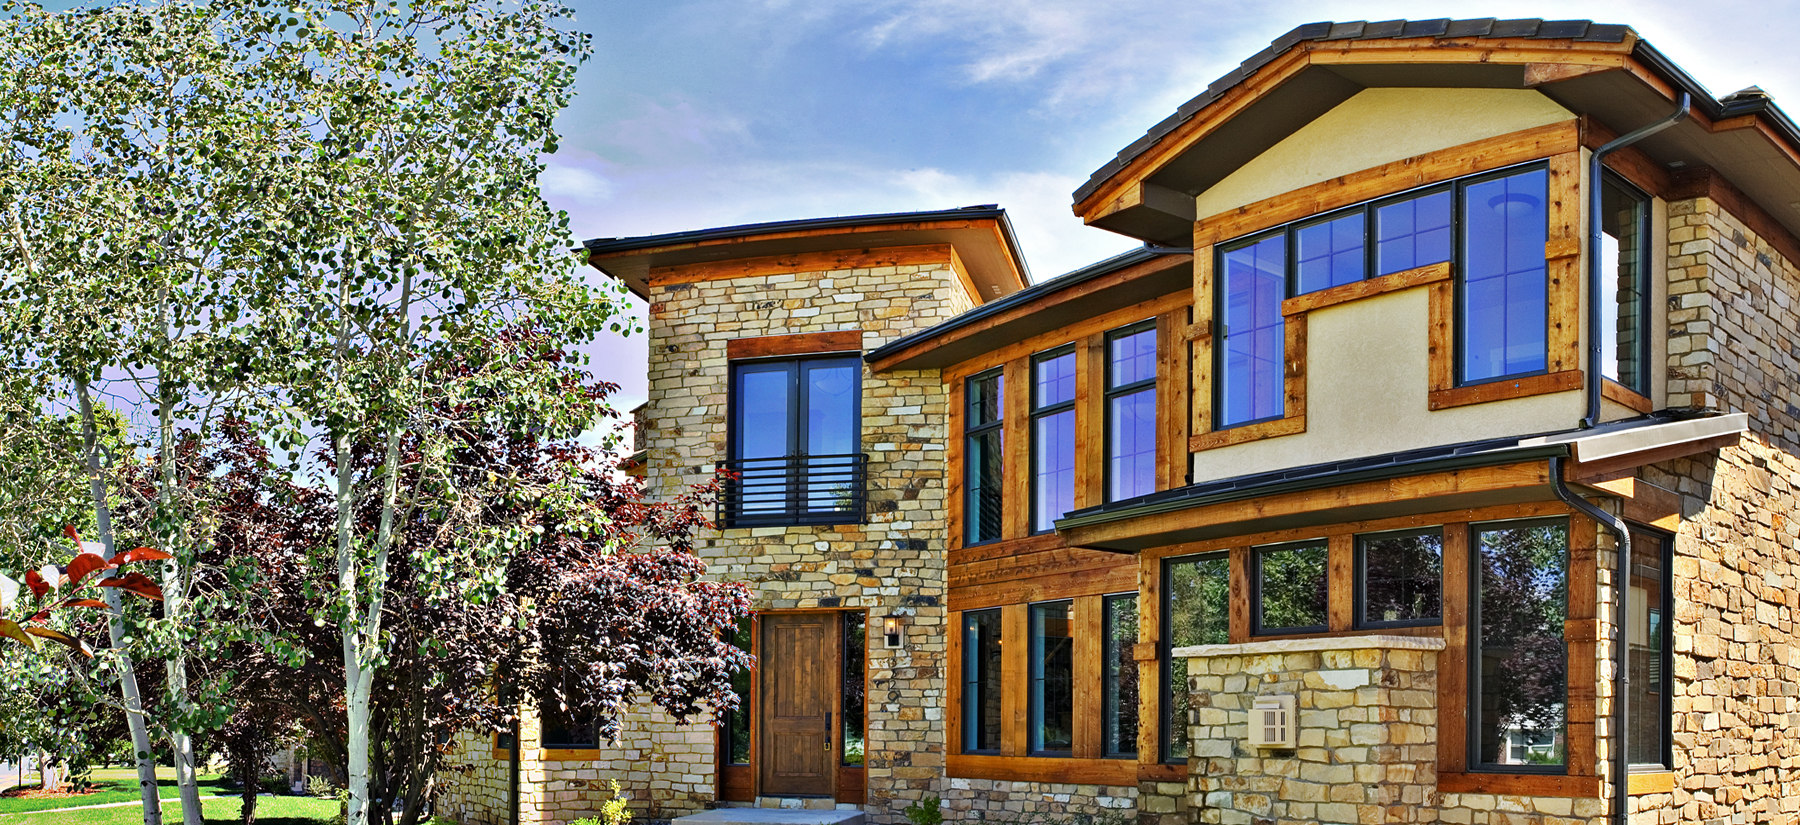 Studio Gunn Architecture Denver Custom Home Architect - Denver architecture firms